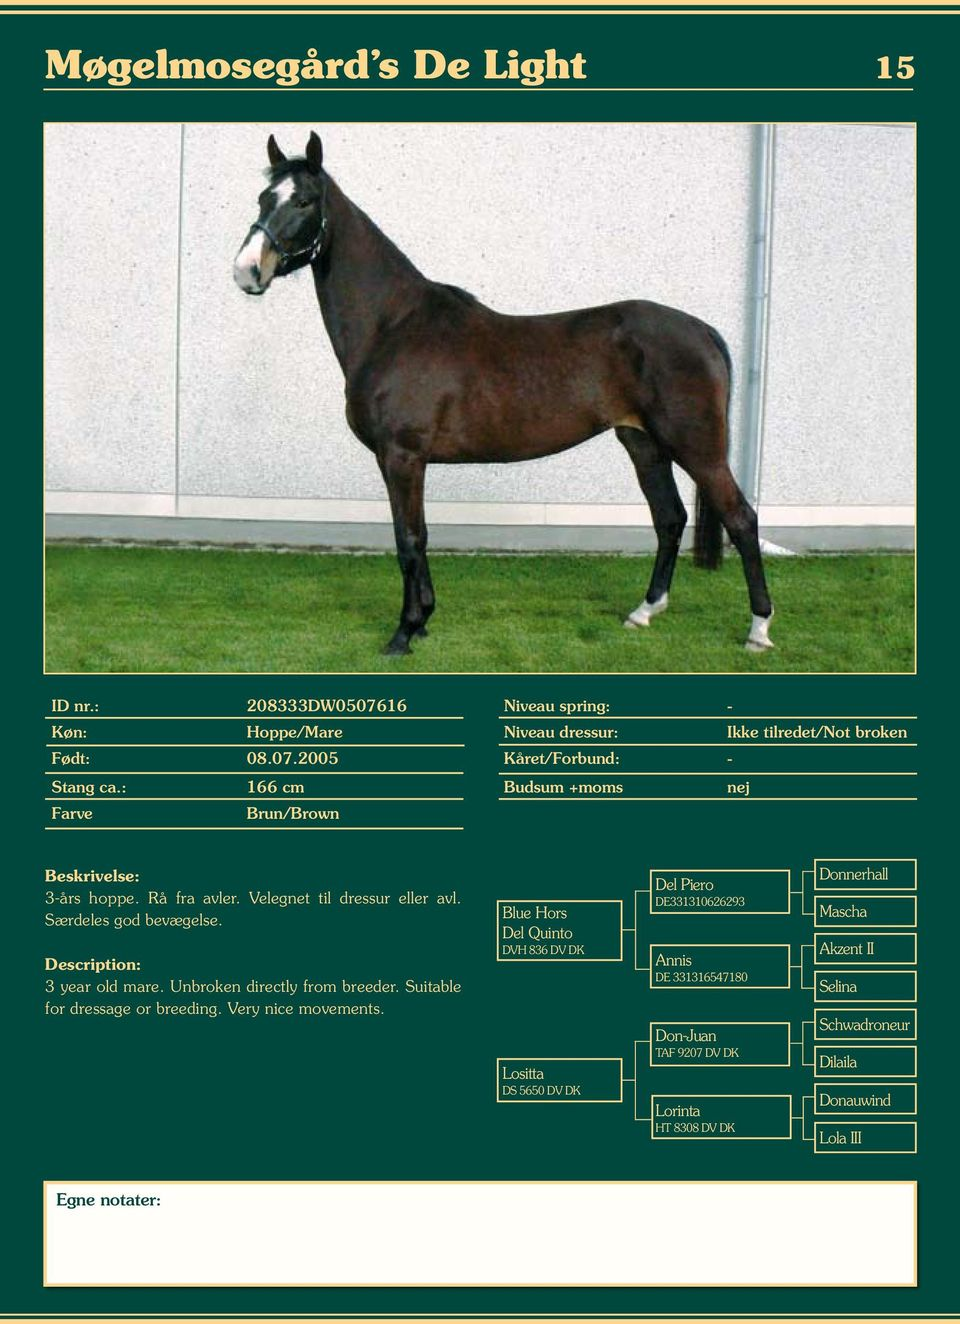 Unbroken directly from breeder. Suitable for dressage or breeding. Very nice movements.